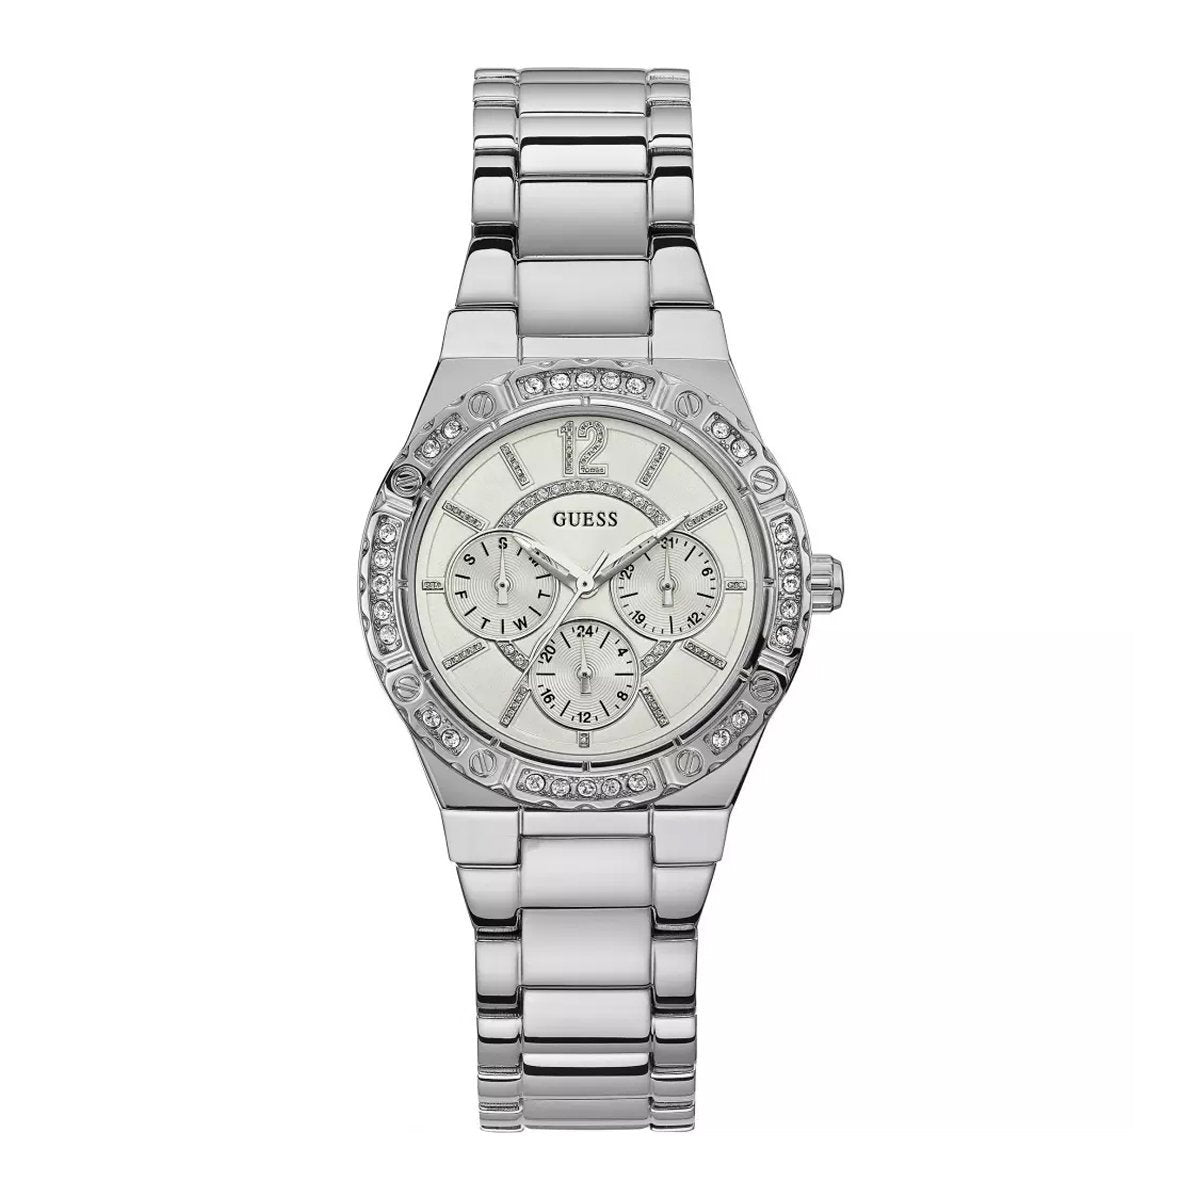 Guess Envy Day Date Steel - Watches & Crystals